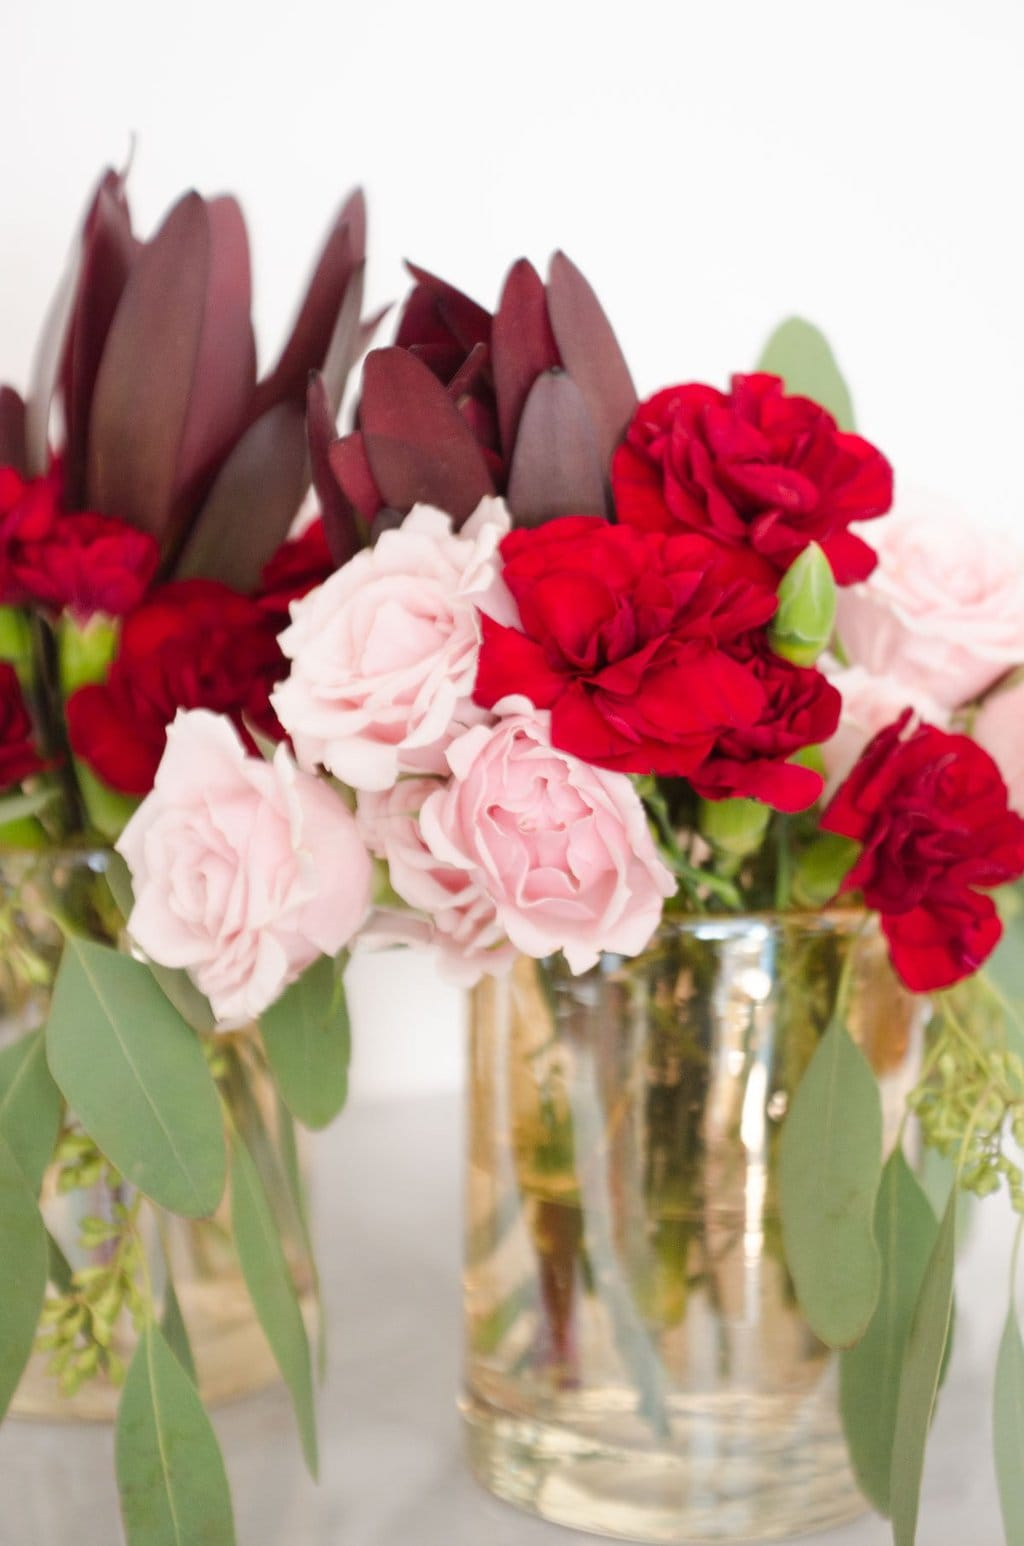 Pink roses, red carnations, leucadendron, and seeded eucalyptus via @thouswellblog